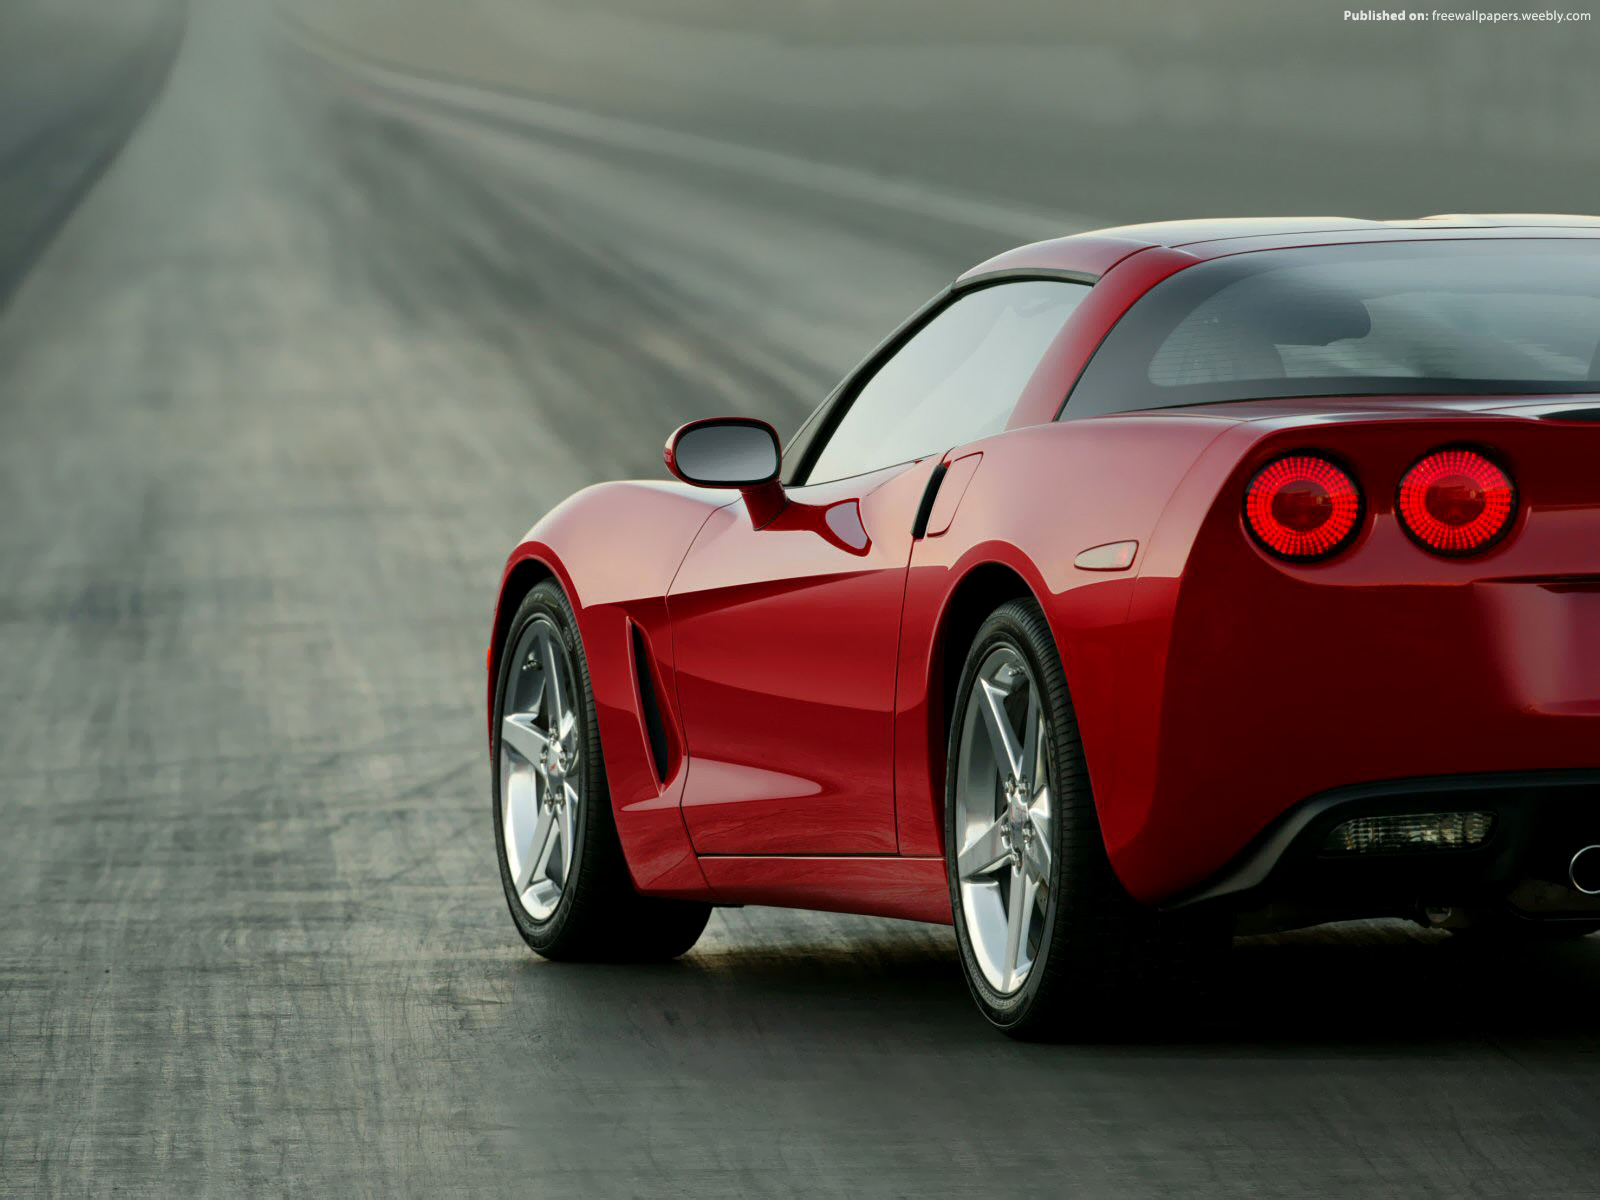 Chevrolet Corvette C5 02 by FreeWallpapers